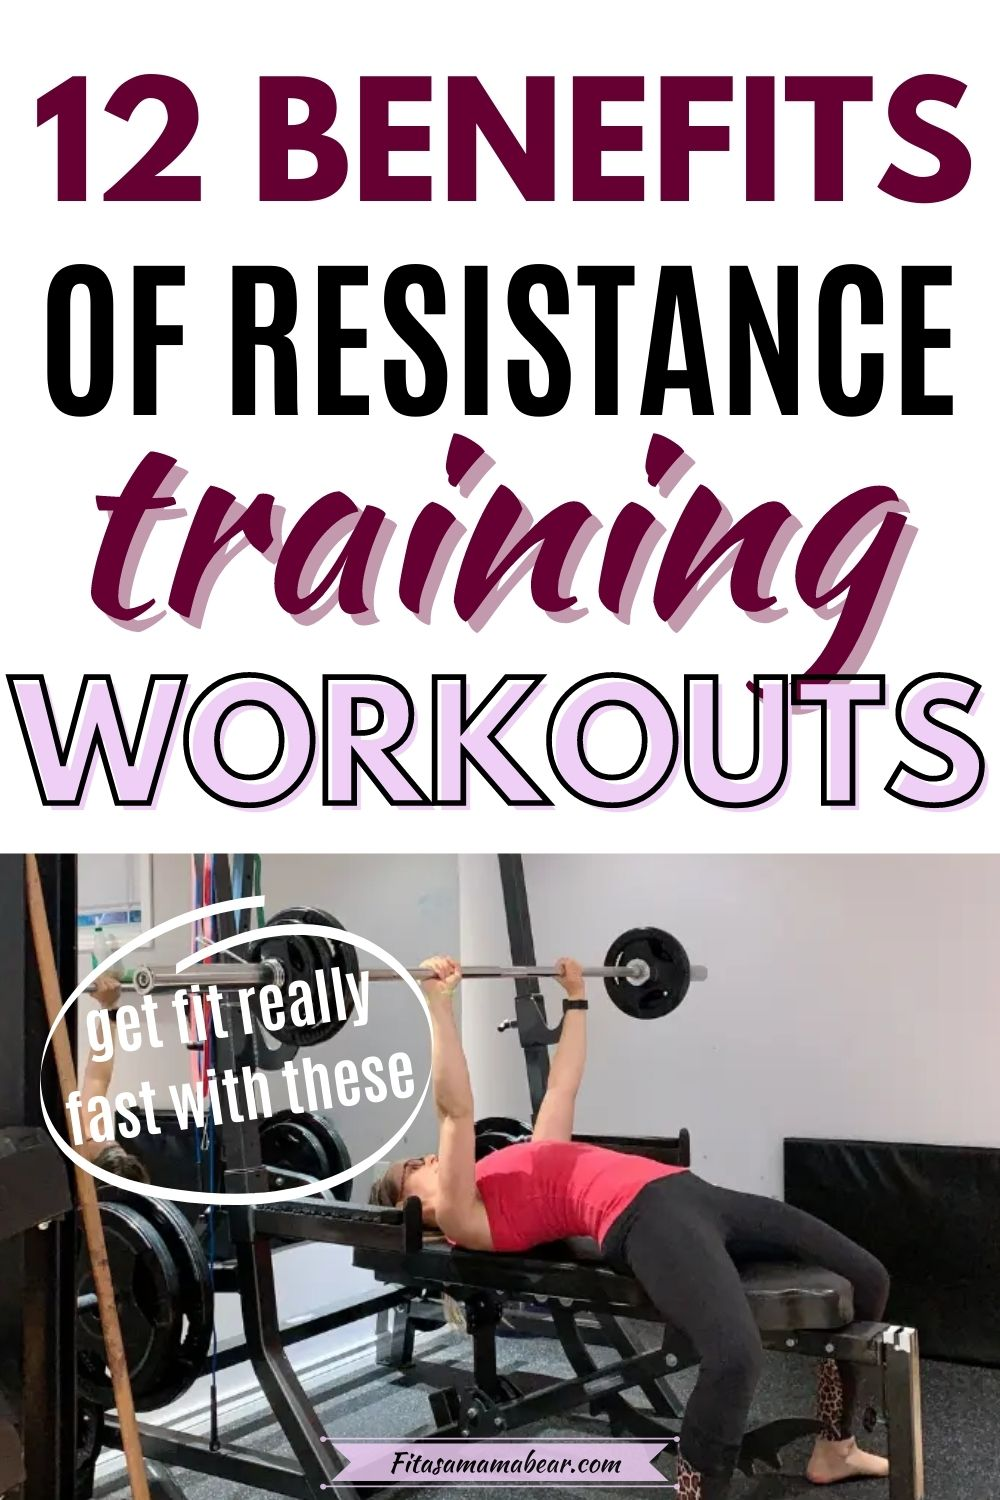 Pinterest image with text: woman in red shirt and black pants performing a barbell bench press in the gym